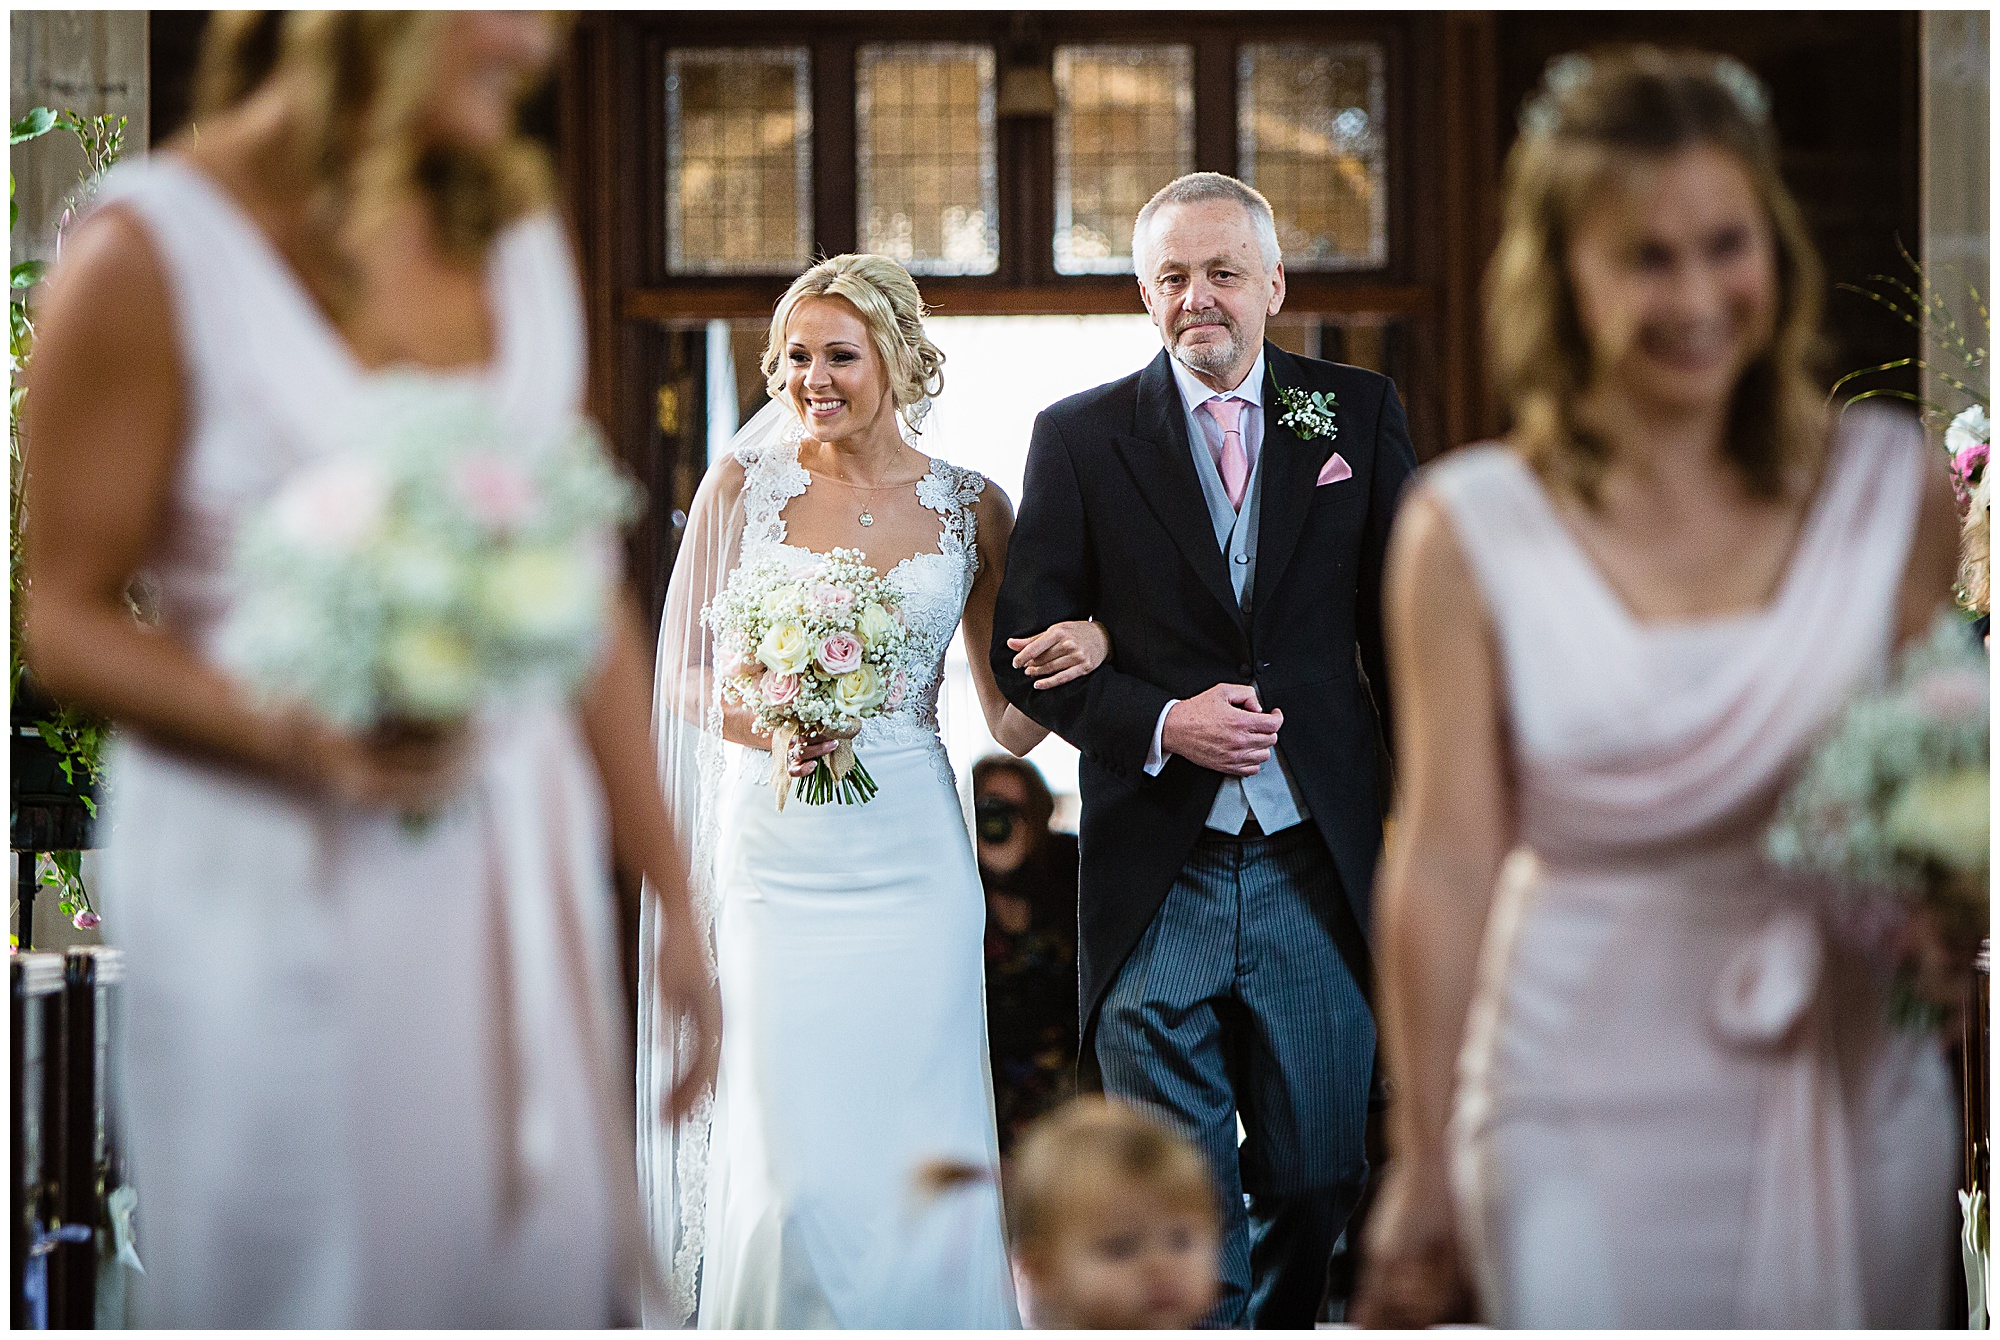 a very excited brdge and dad walking down the aisle - shrophire wedding photographer